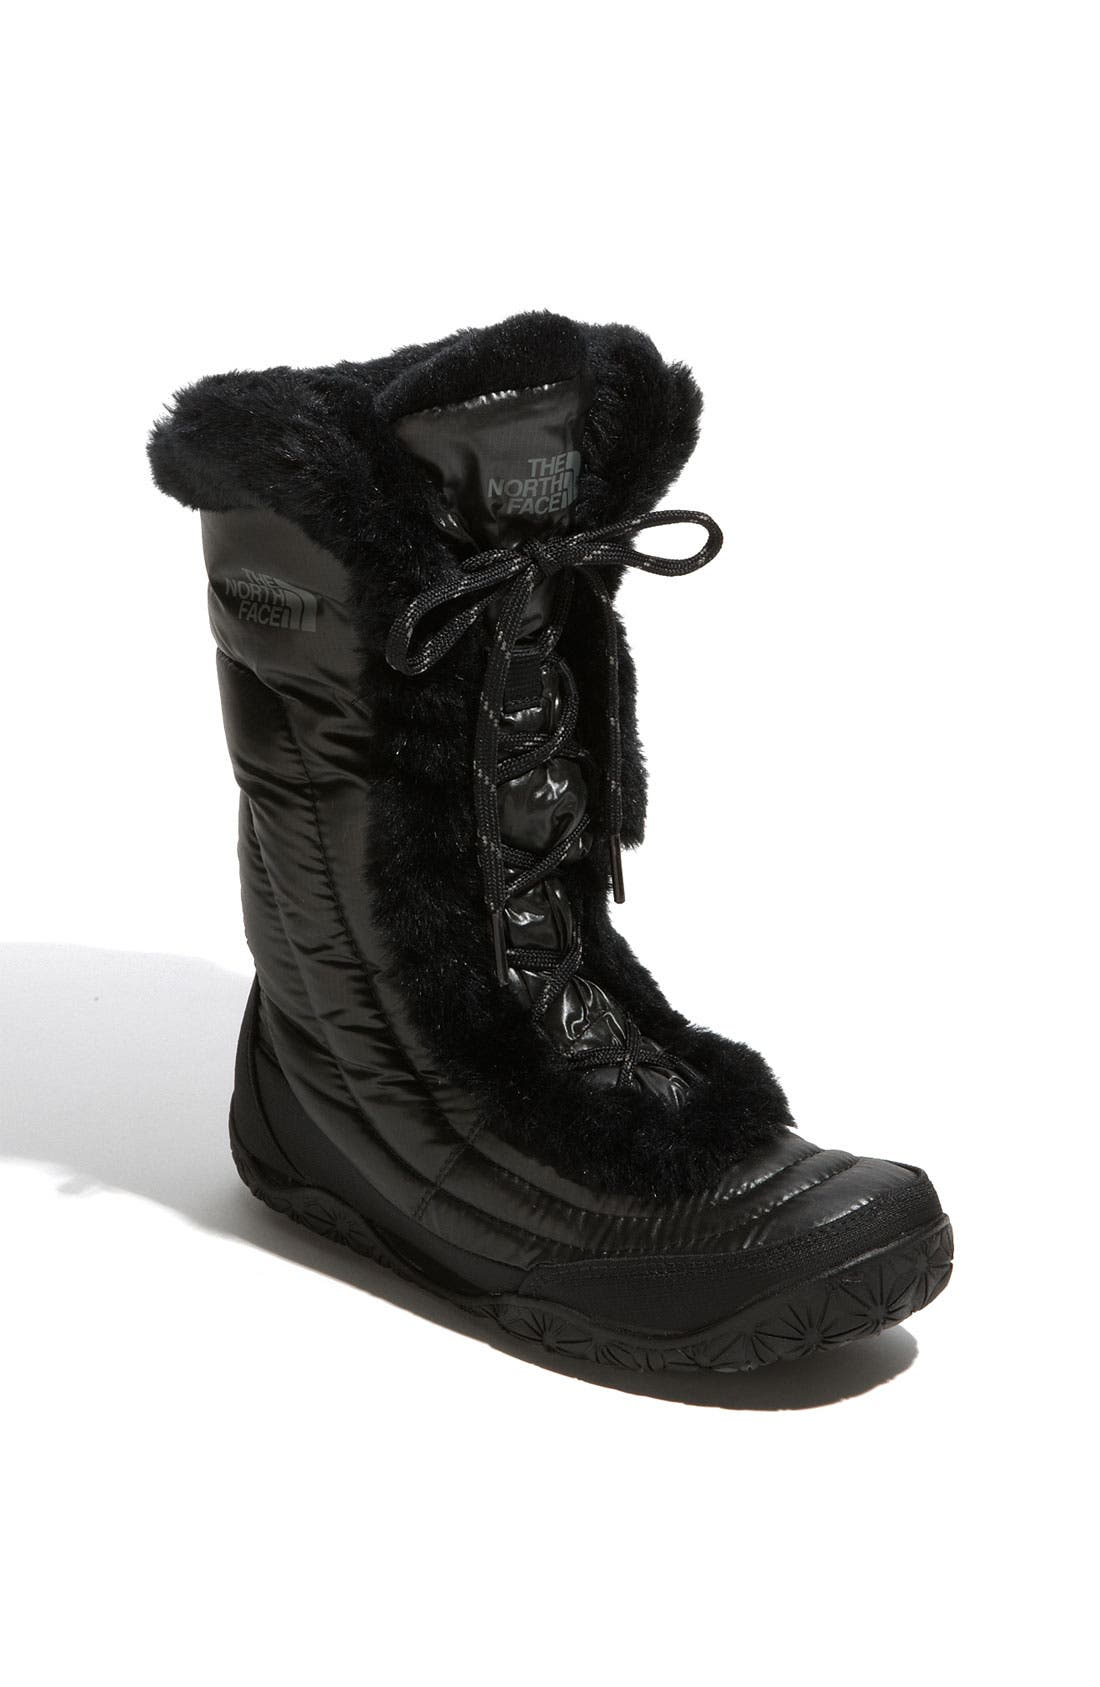 Alternate Image 1 Selected - The North Face 'Nuptse Fur IV' Boot